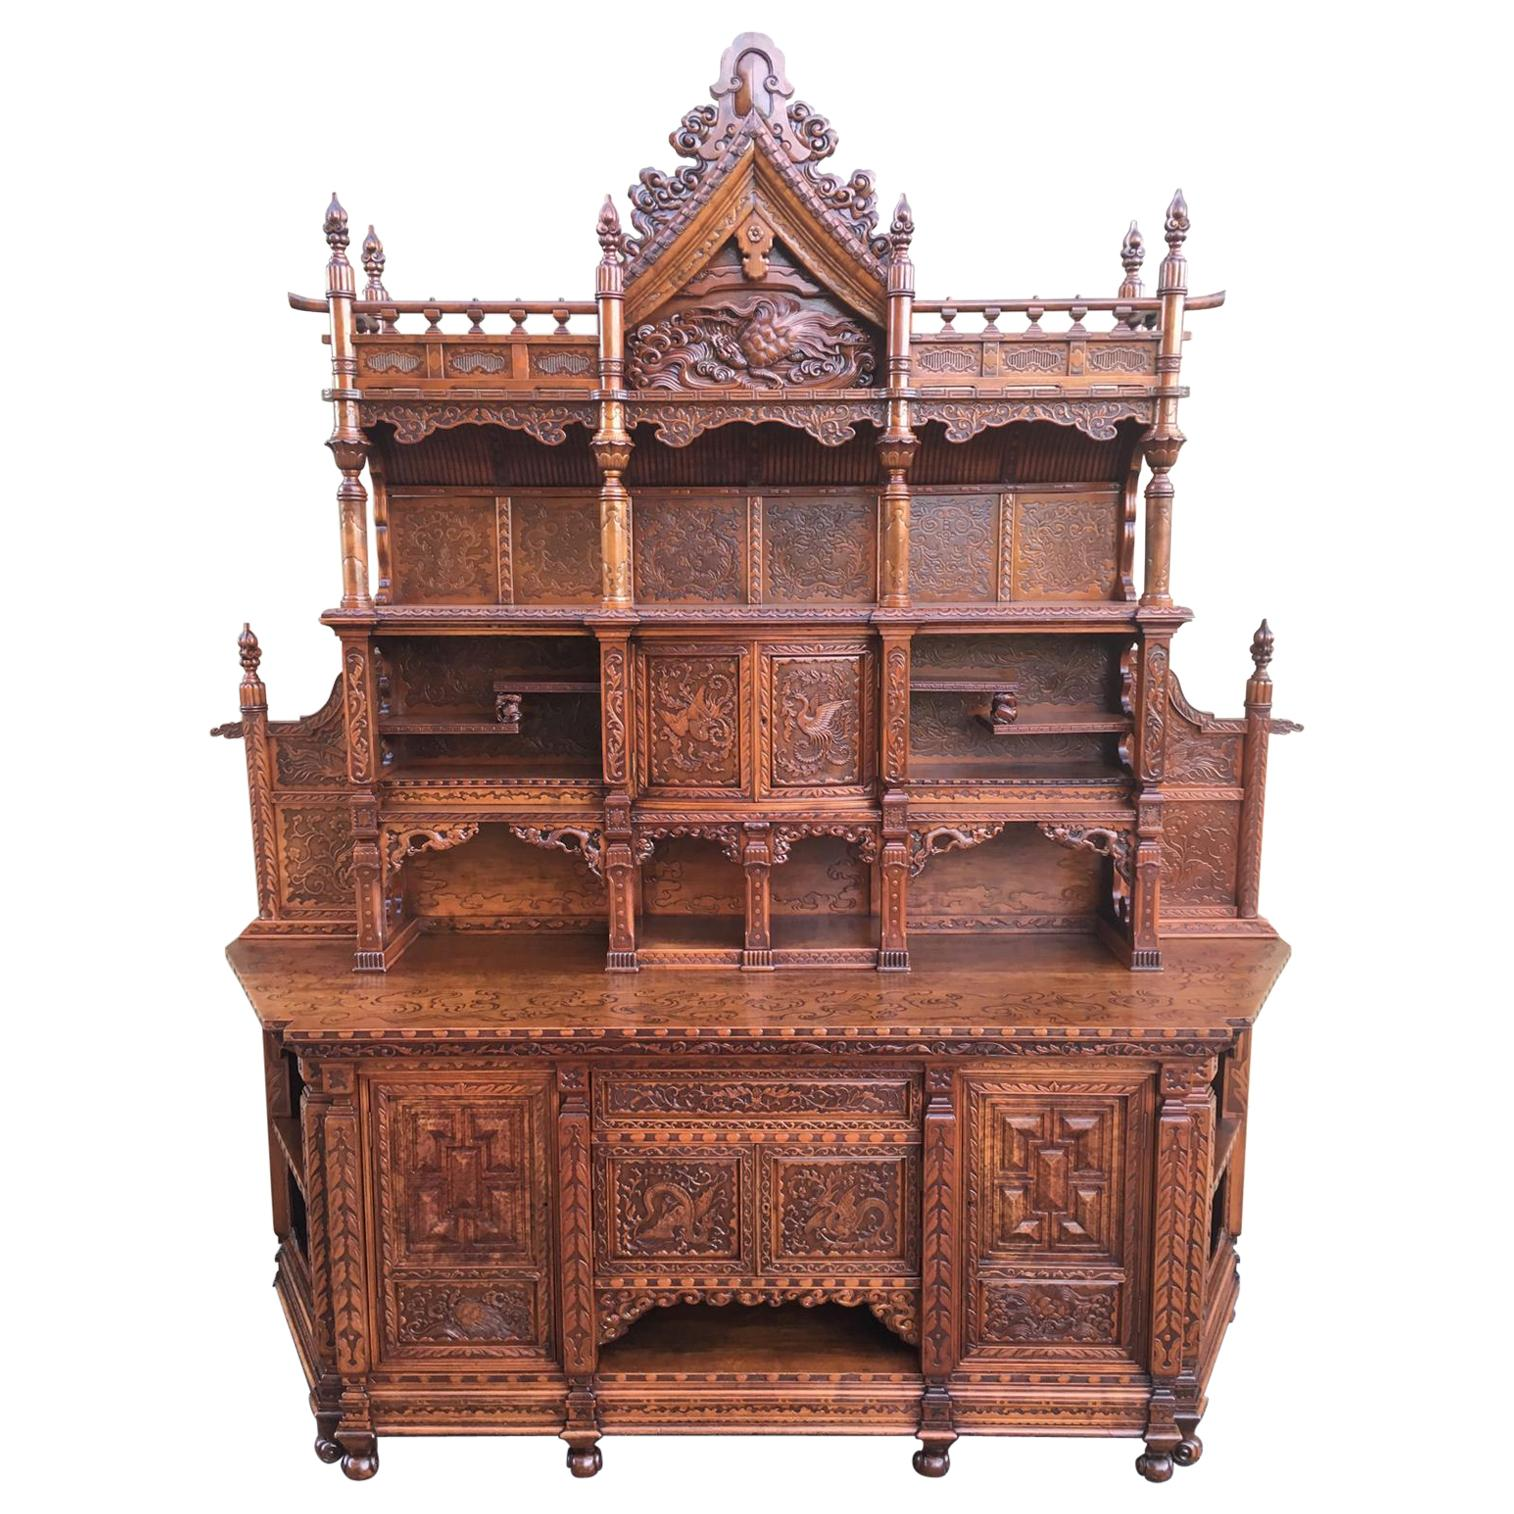 Indian cabinet or armoire with hand carved doors from 20th century for sale at 1stdibs